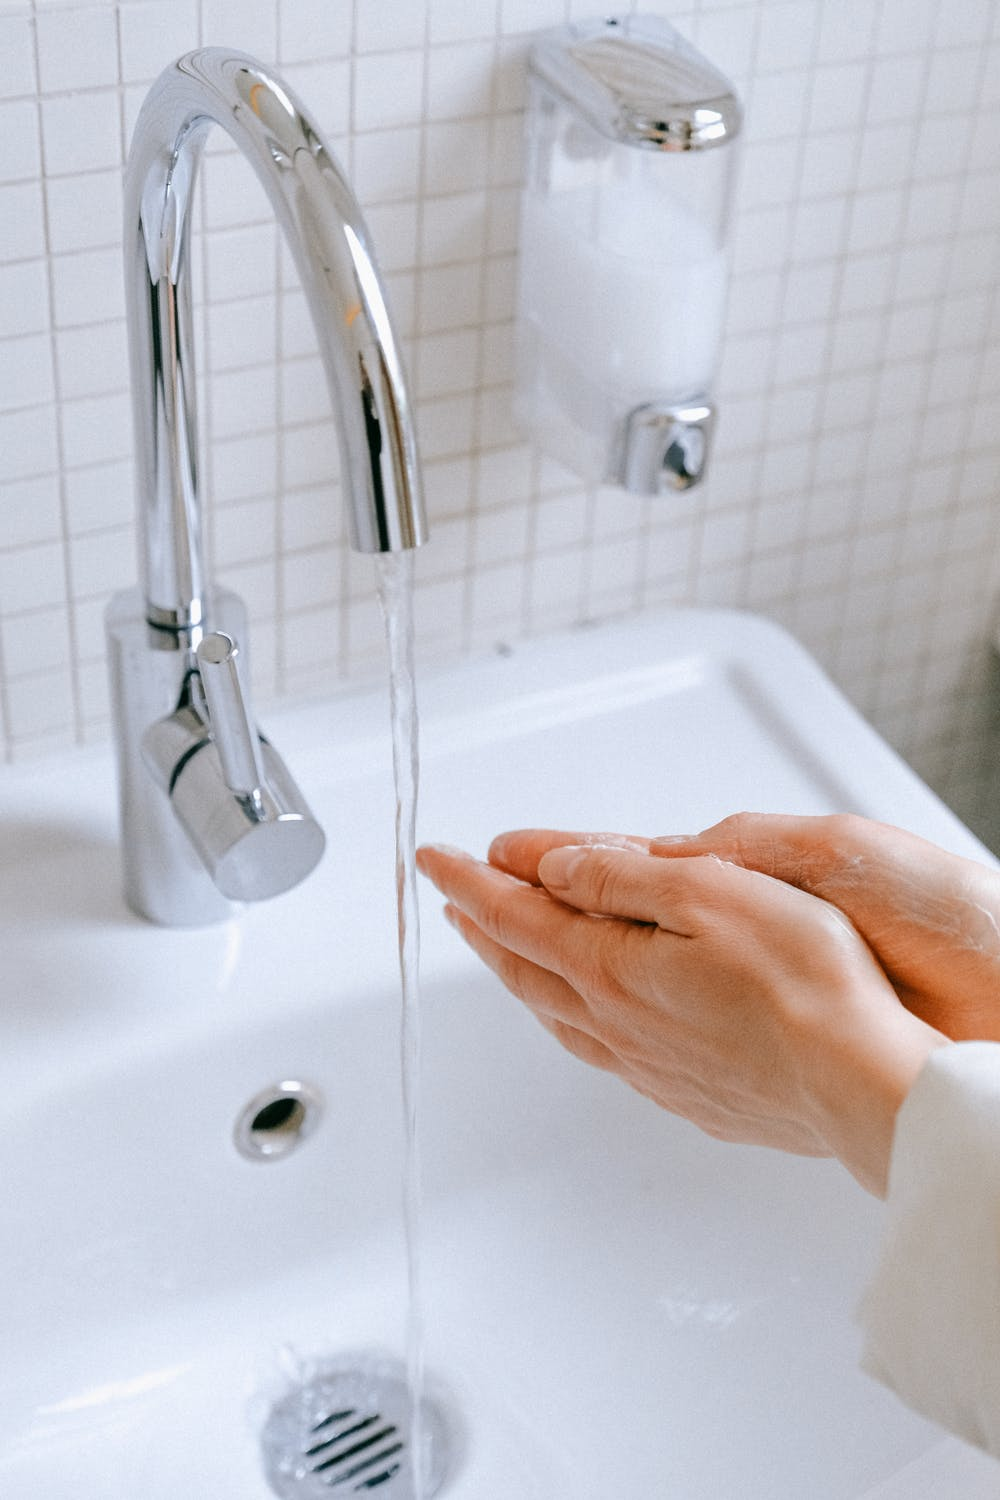 A person washing their hands with soap